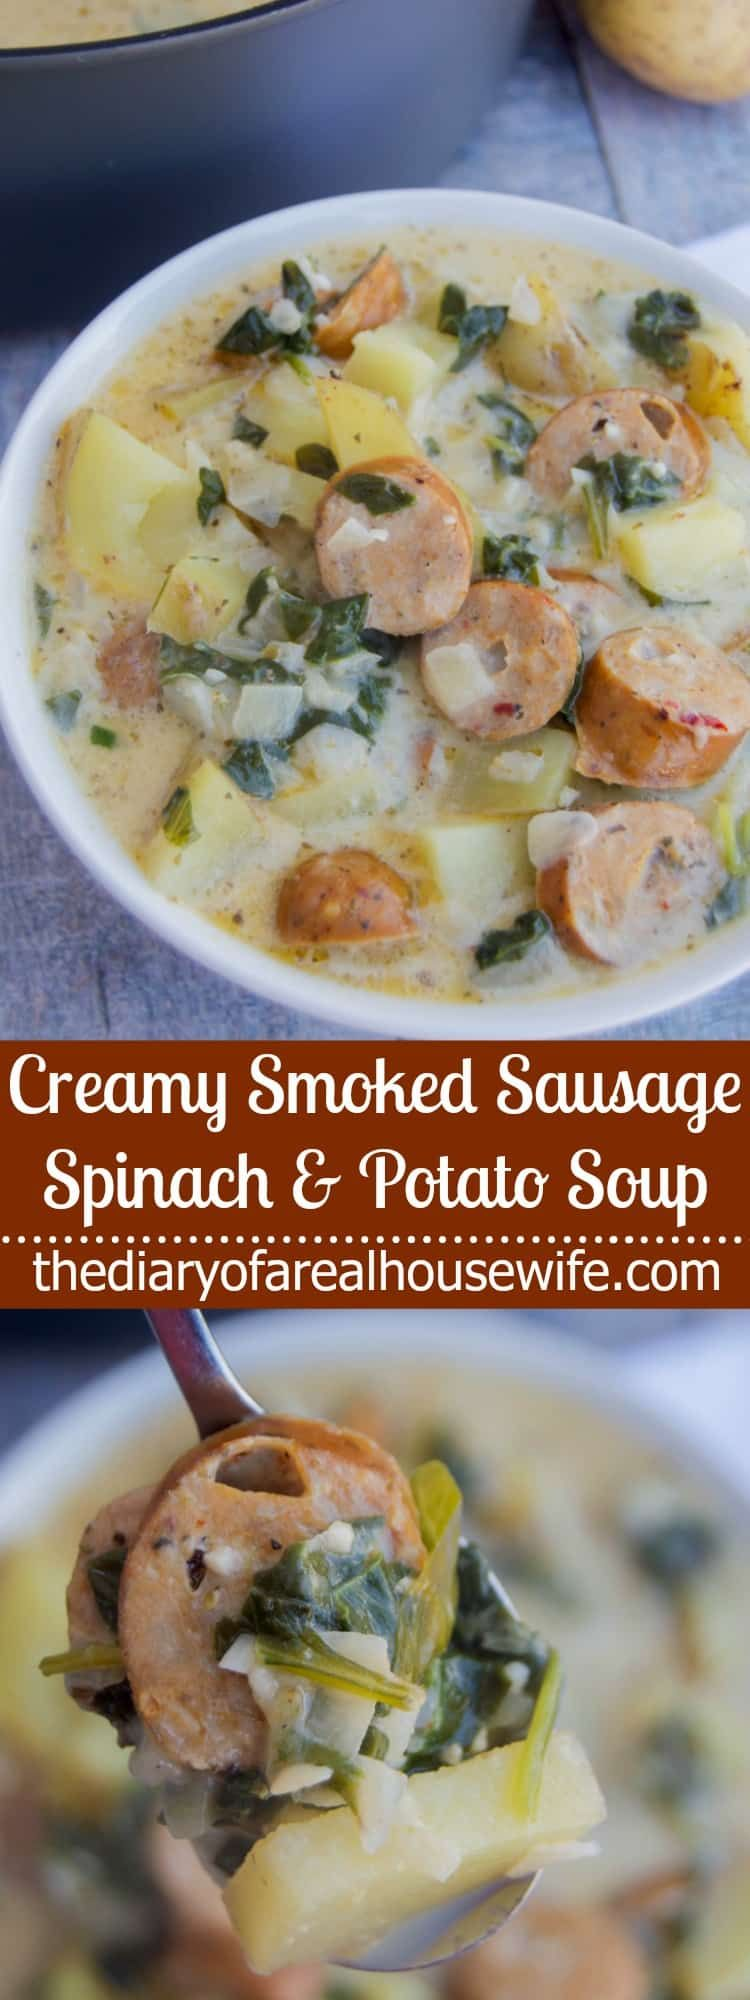 Creamy Smoked Sausage Spinach and Potato Soup #spinachsoup